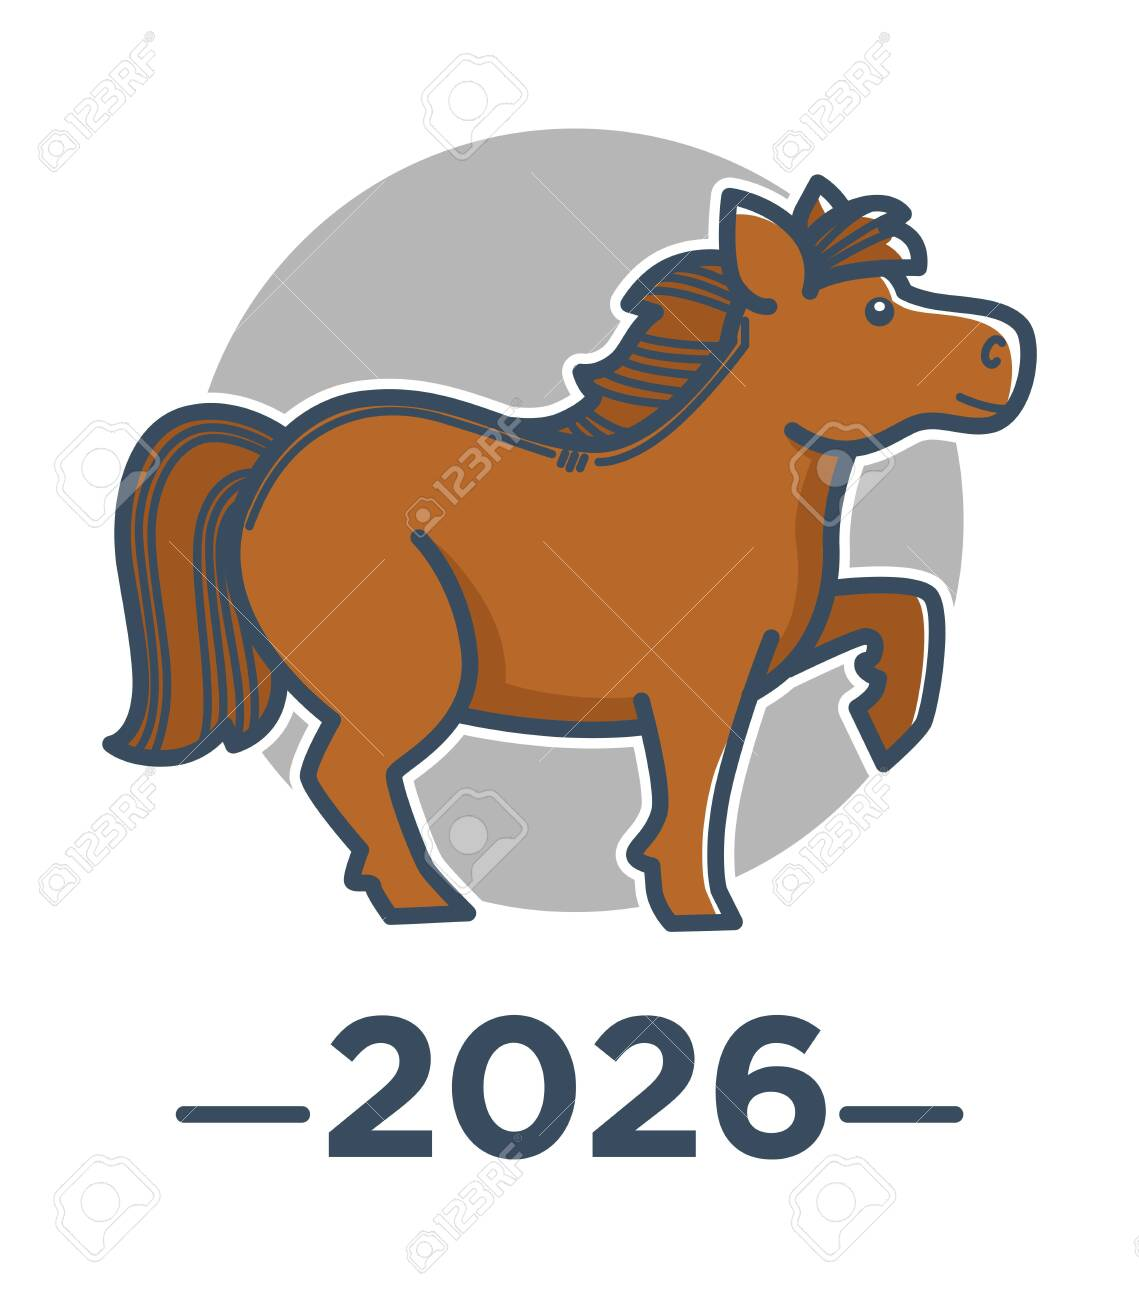 Horse Zodiac Sign Chinese Horoscope 2026 New Year Symbol Royalty Free Cliparts Vectors And Stock Illustration Image 130363824